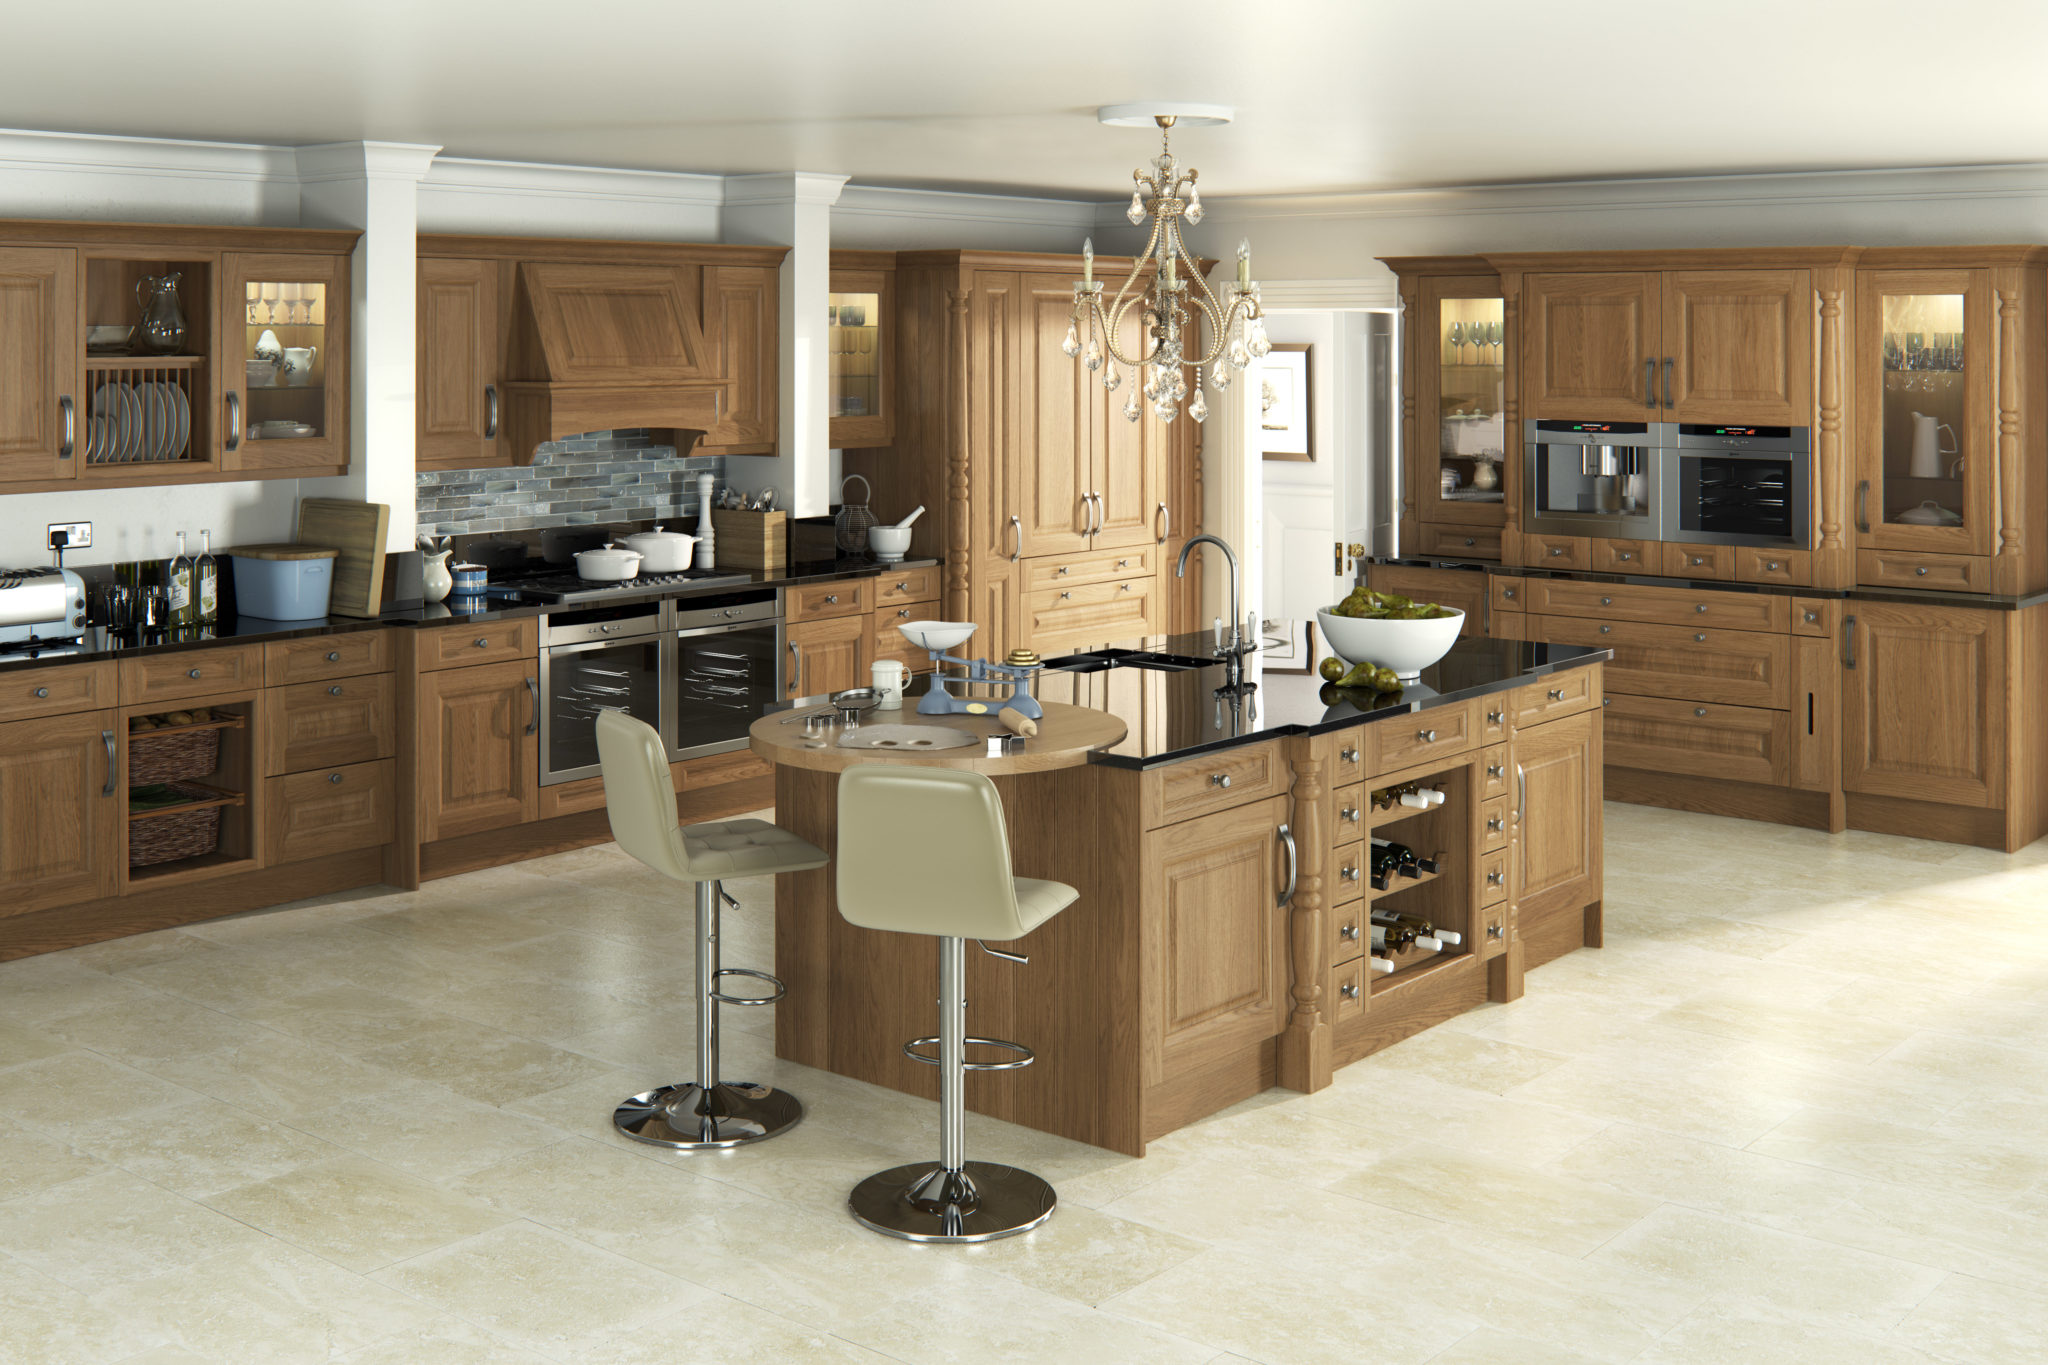 Traditional kitchen design oak kitchens traditional for Kitchen tradition